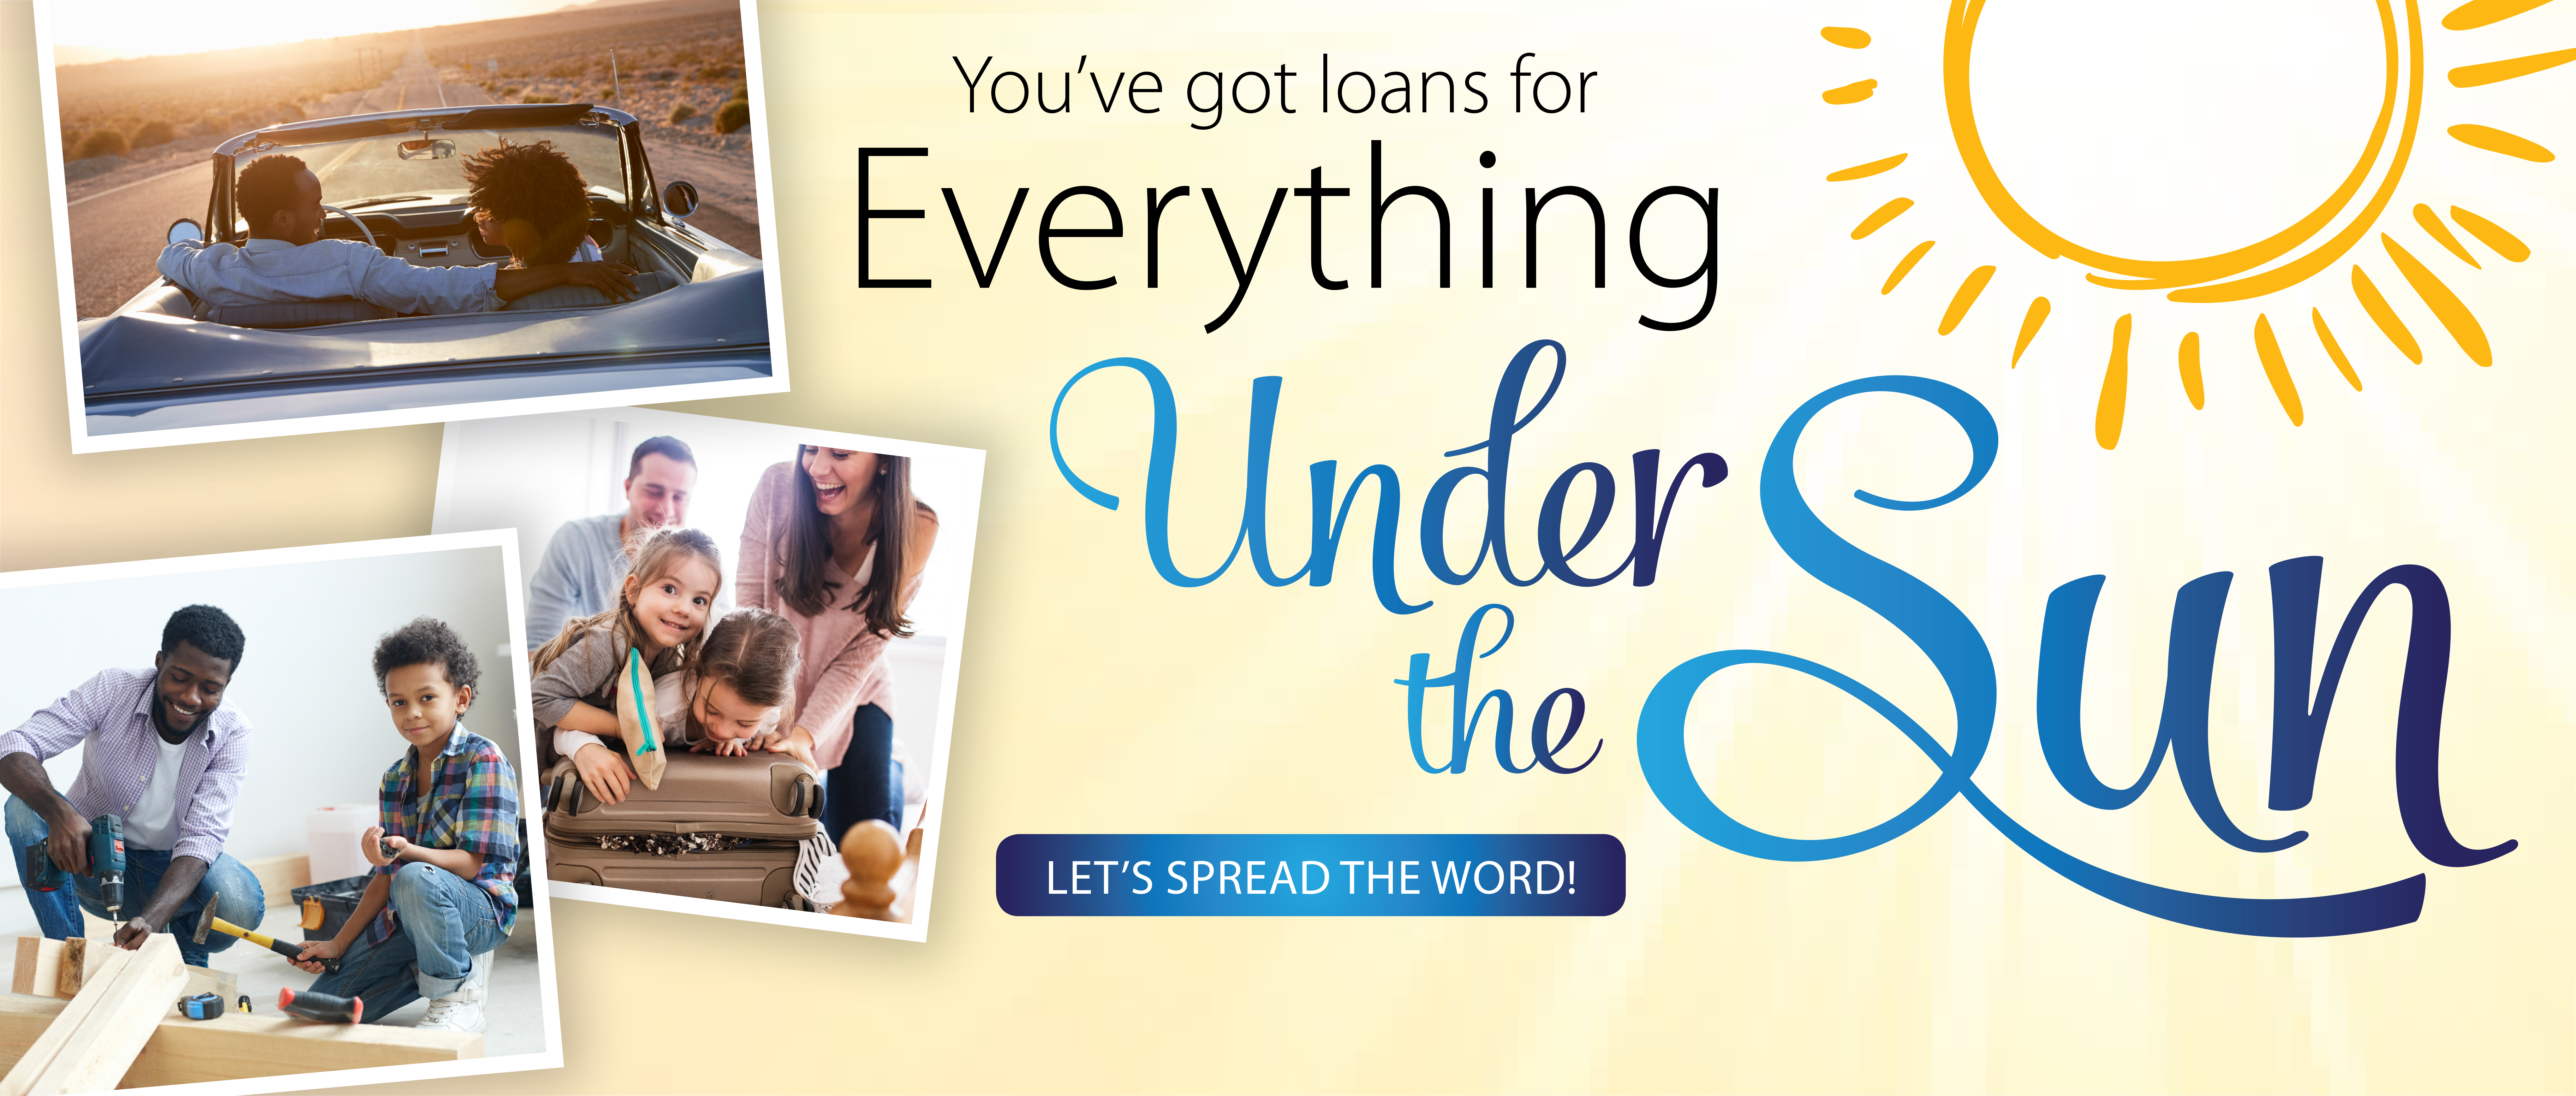 Summer Personal Loans